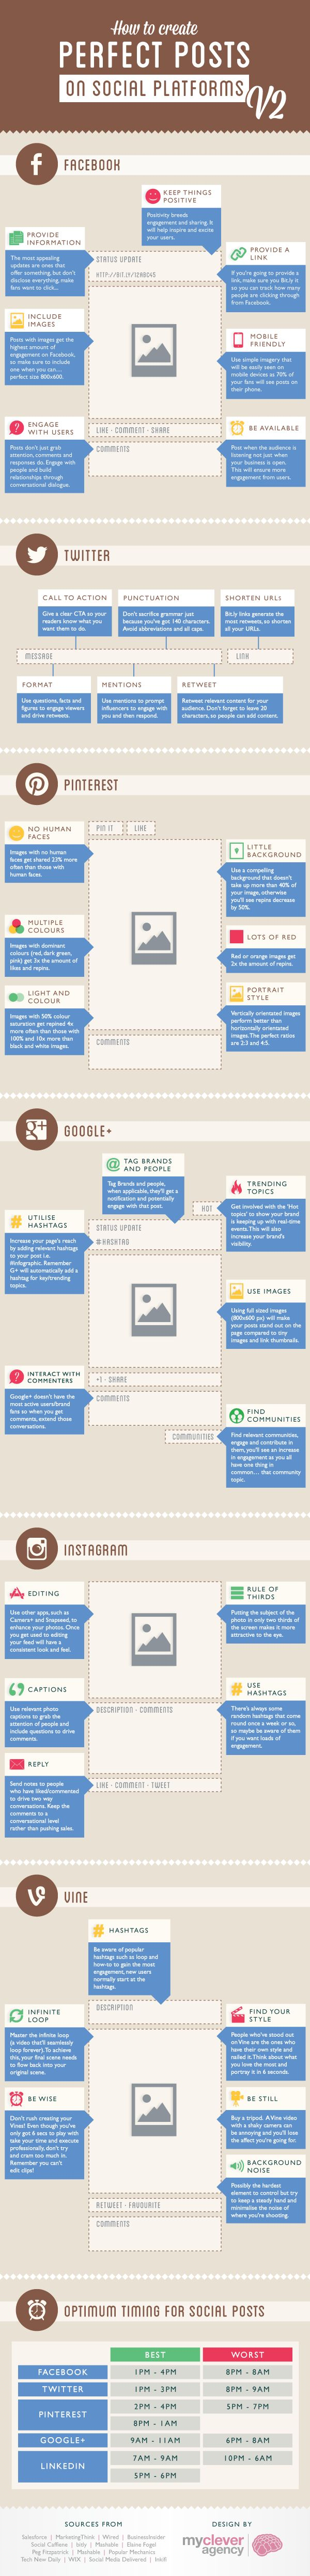 How to plan and create your posts for social media - in case I have to do social media for work.